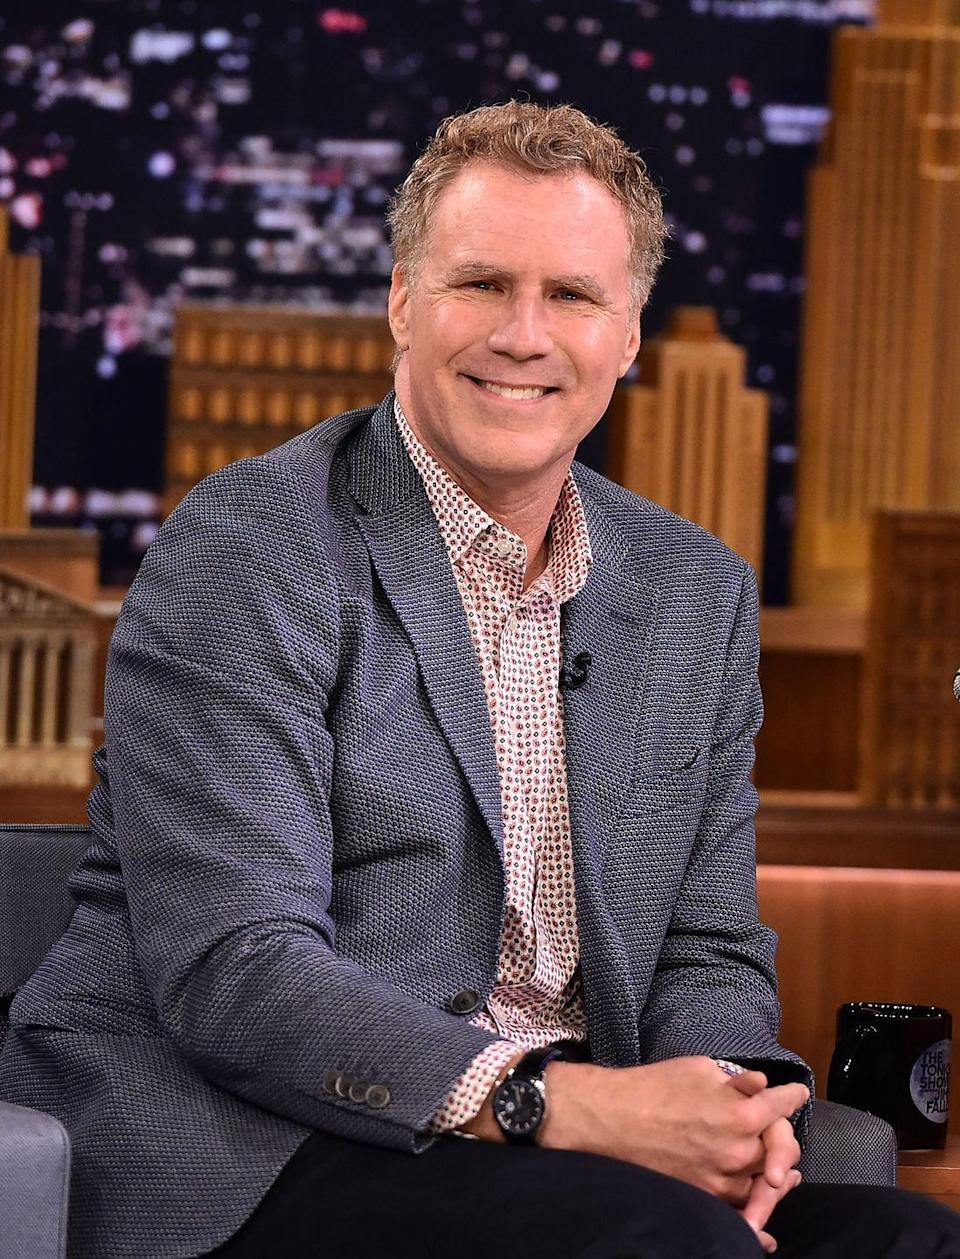 """<p>One of Will Ferrell's most iconic roles was Frank the Tank in <em>Old School—</em>perhaps he was drawing from real-life experience? During his time at the University of Southern California, Ferrell was a member of Delta Tau Delta, although he's since said there's an <a href=""""https://www.huffpost.com/entry/will-ferrell-racist-frat_n_6920386"""" data-ylk=""""slk:argument for banning the institutions altogether"""" class=""""link rapid-noclick-resp"""">argument for banning the institutions altogether</a>. </p>"""